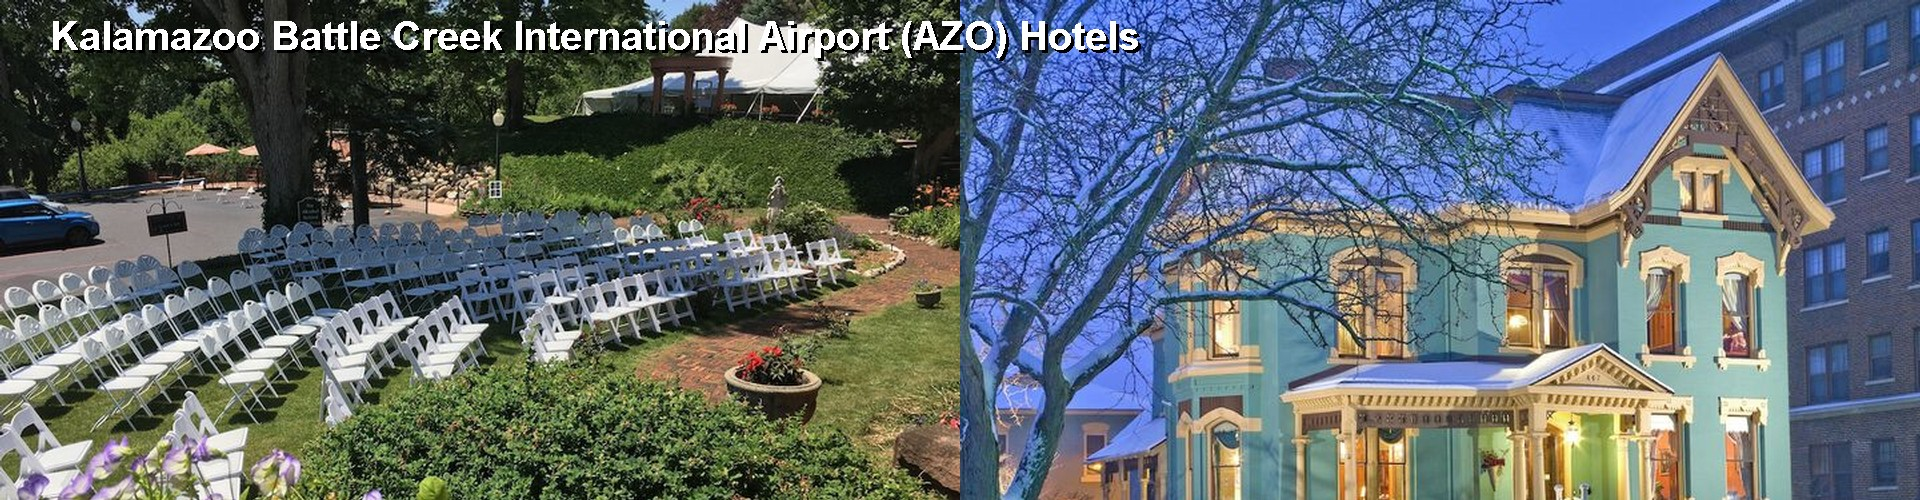 5 Best Hotels near Kalamazoo Battle Creek International Airport (AZO)